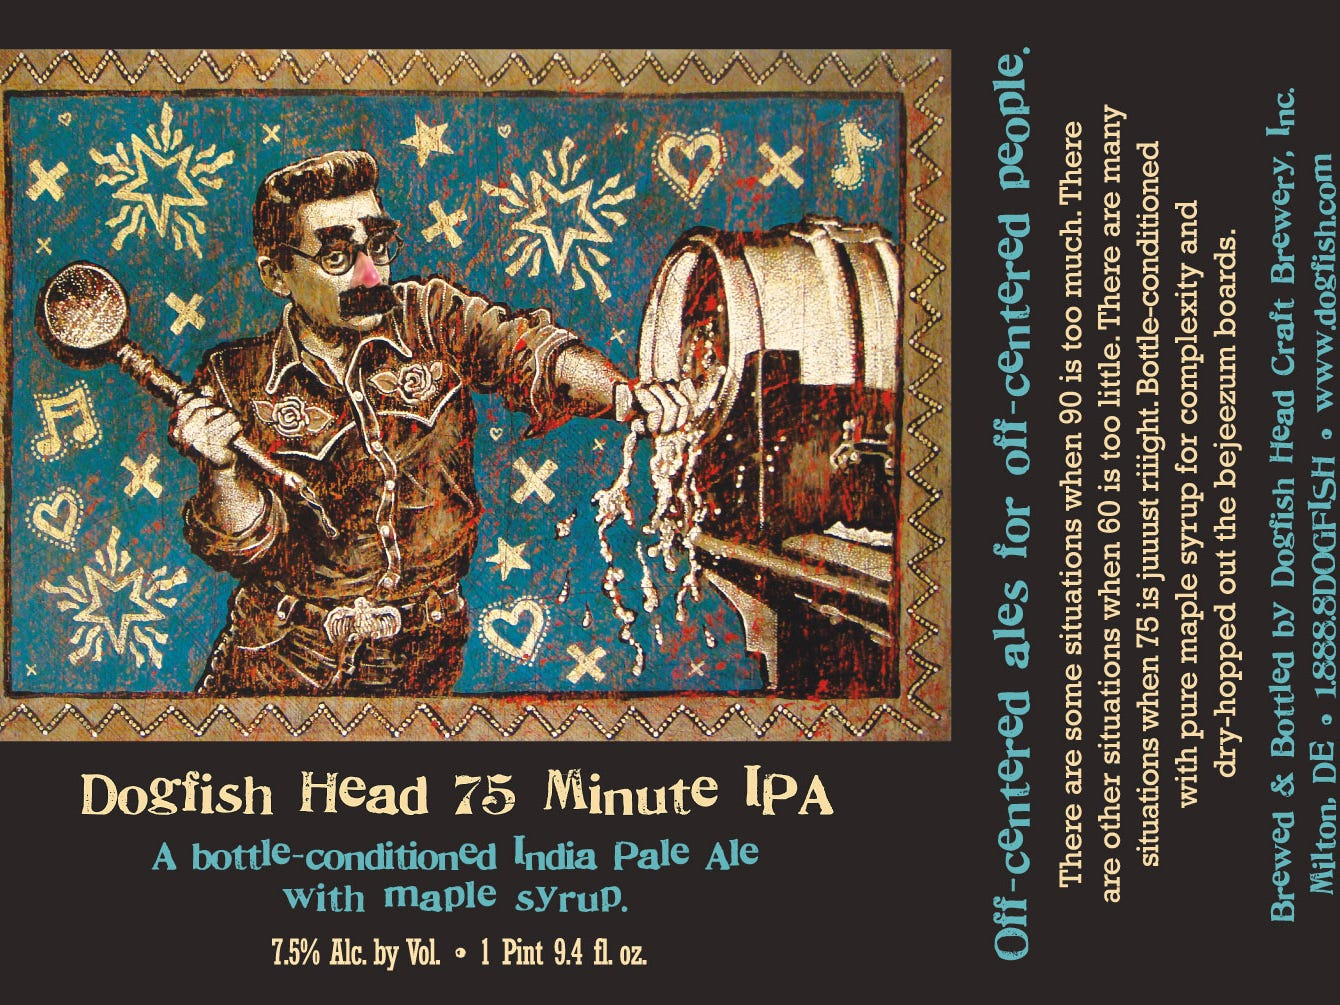 Dogfish Head's 75 Minute IPA label is 2017.